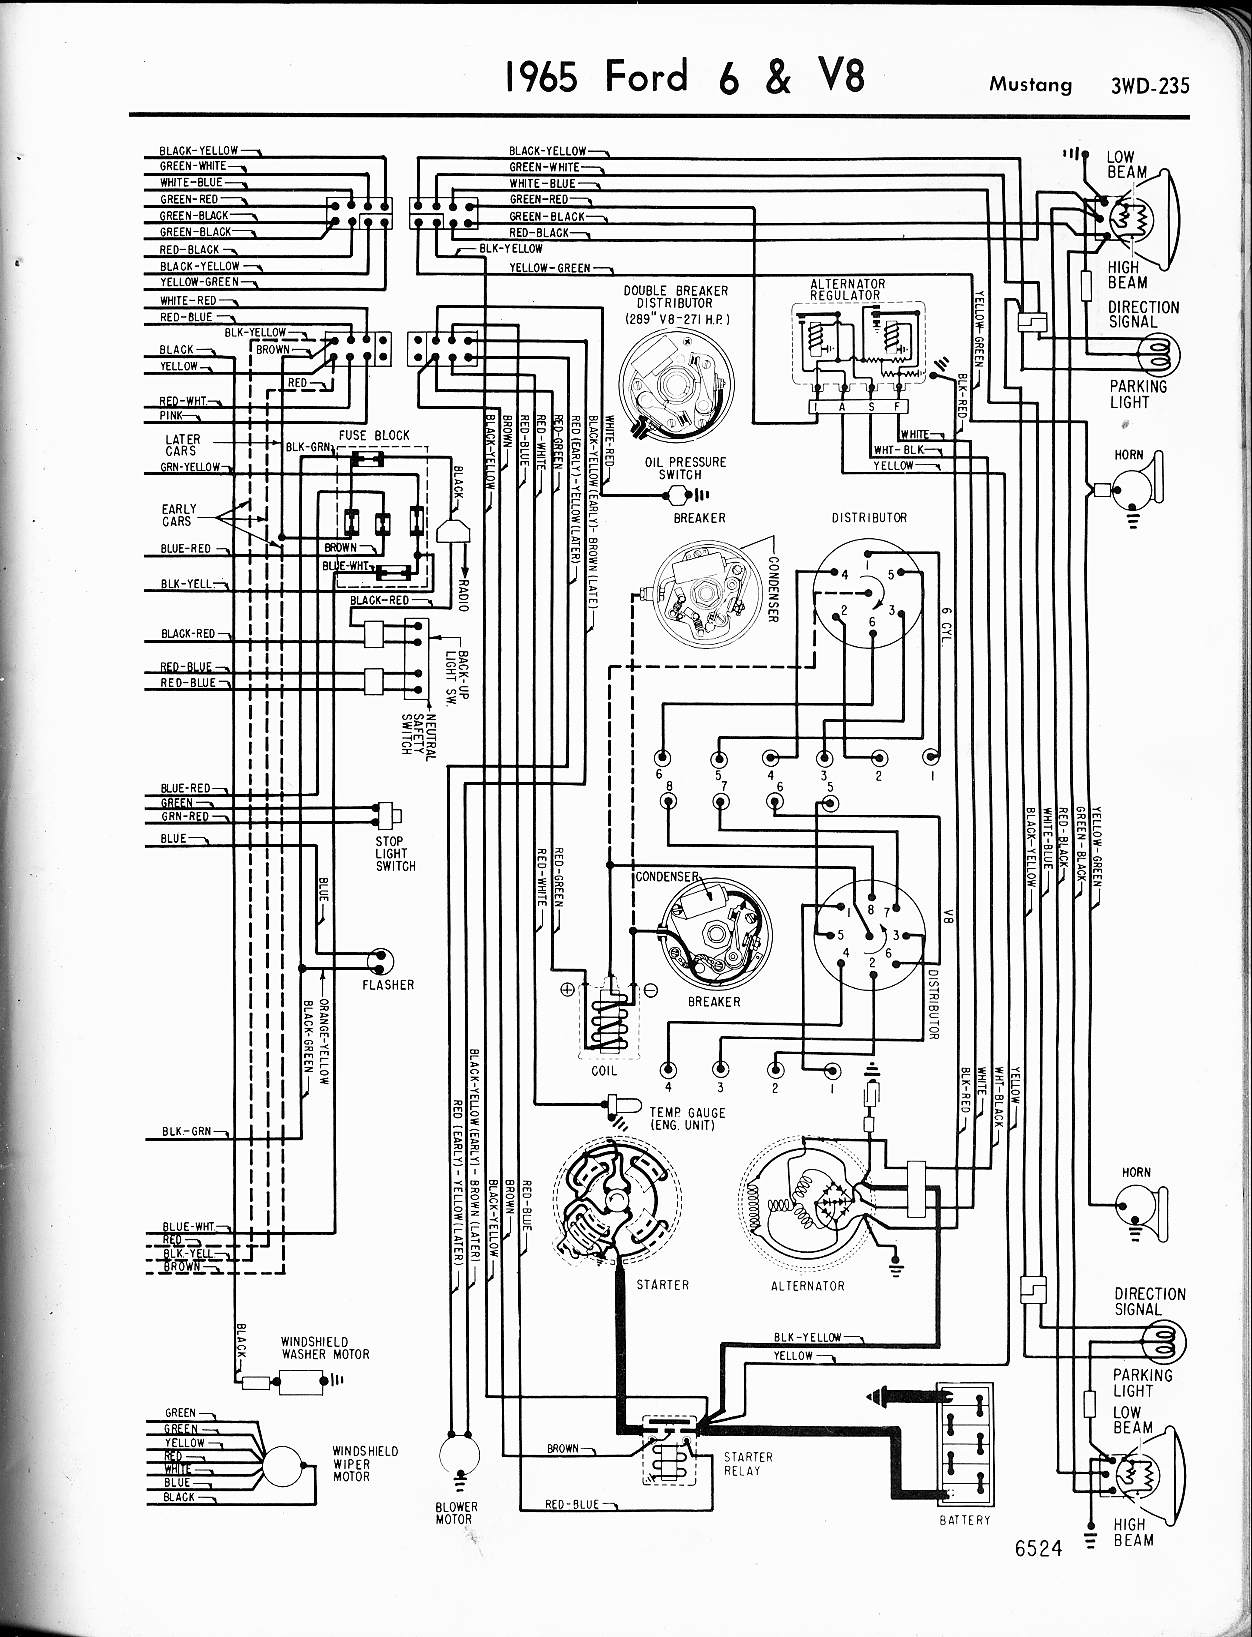 ford ranger alternator wiring diagram contactor coil 57 65 diagrams 1965 6 v8 mustang right